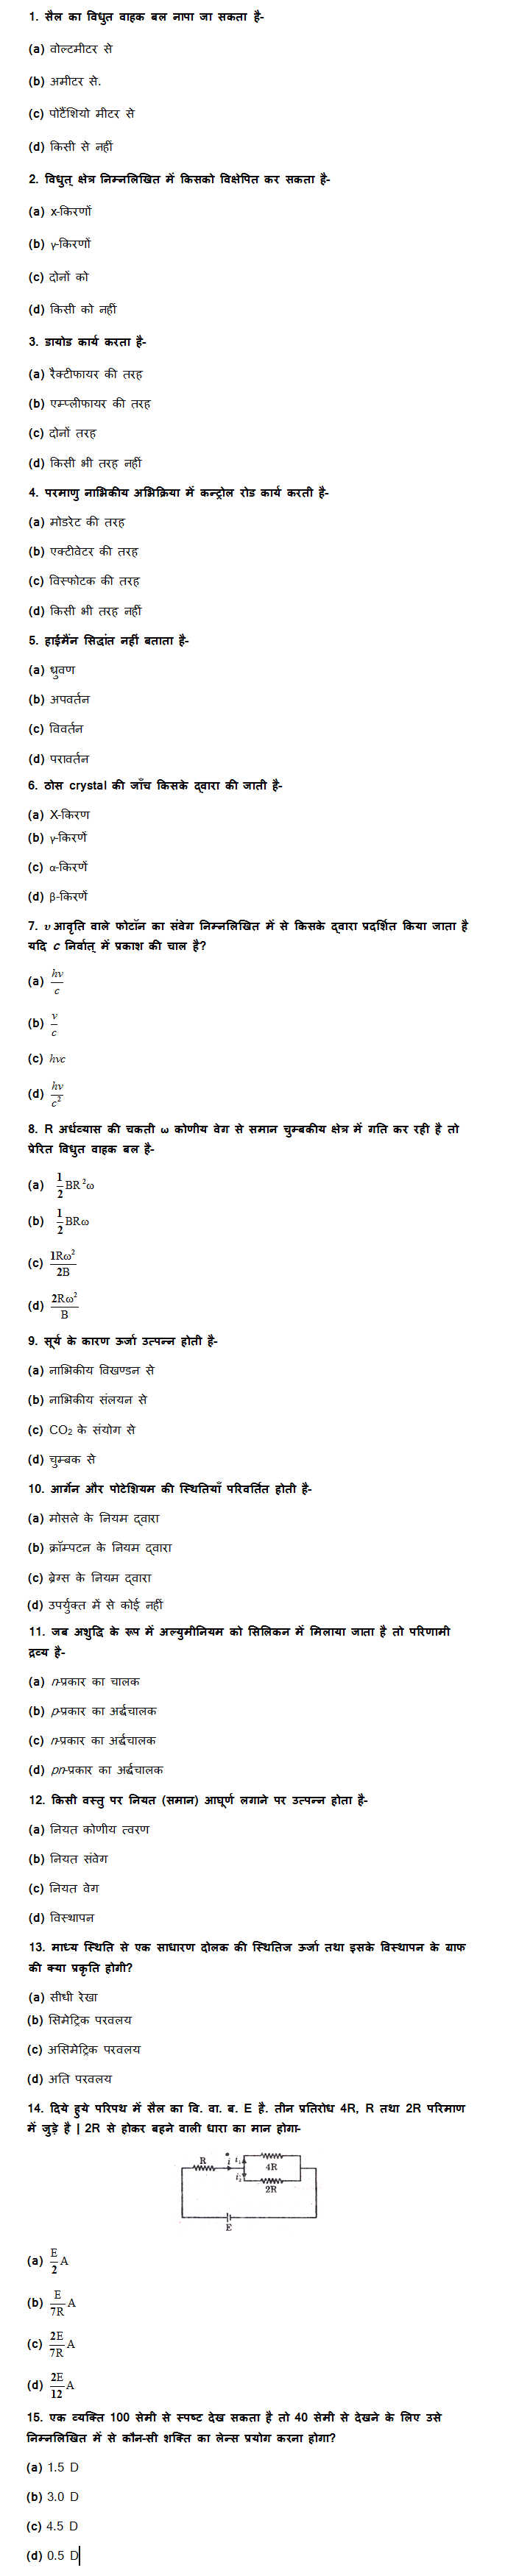 UP Board Class 12th Physics MCQ Test Set: 1 5